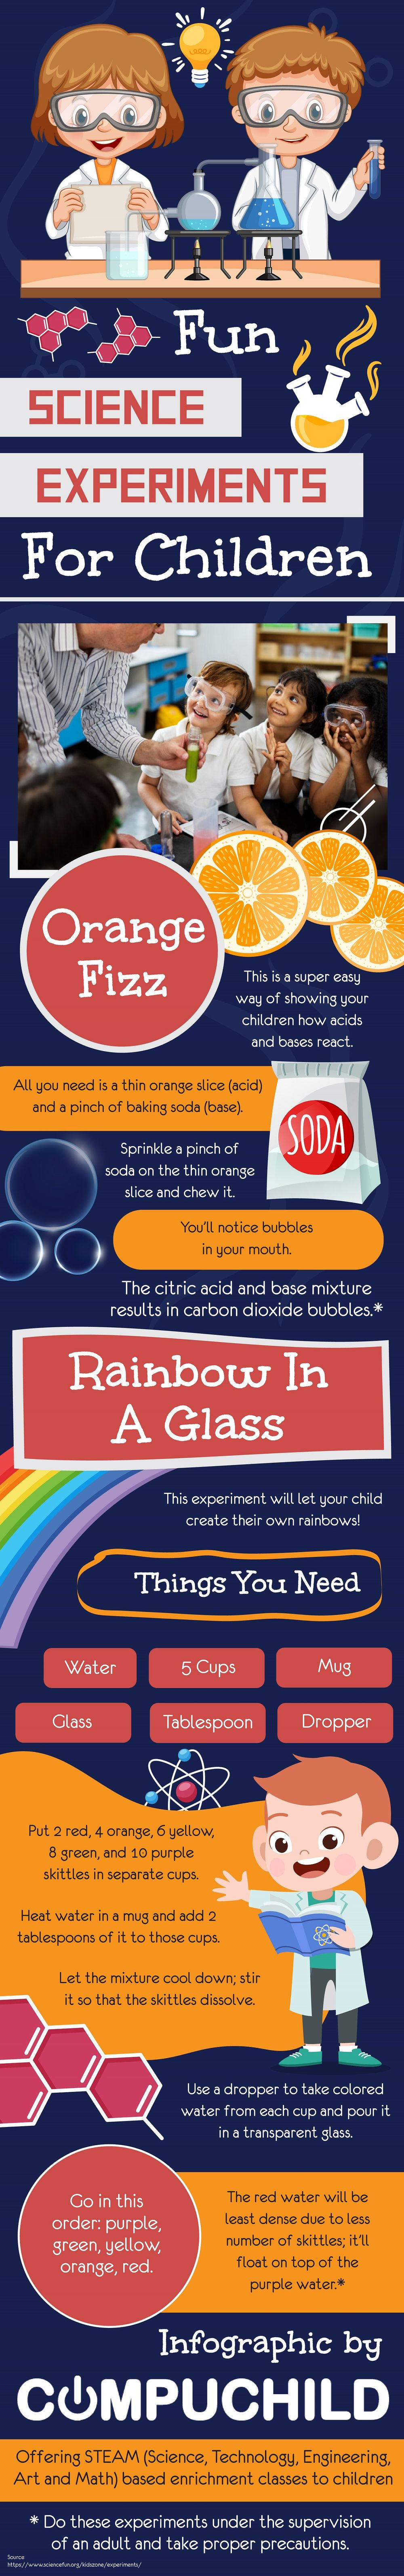 Fun Science Experiments For Children.jpg